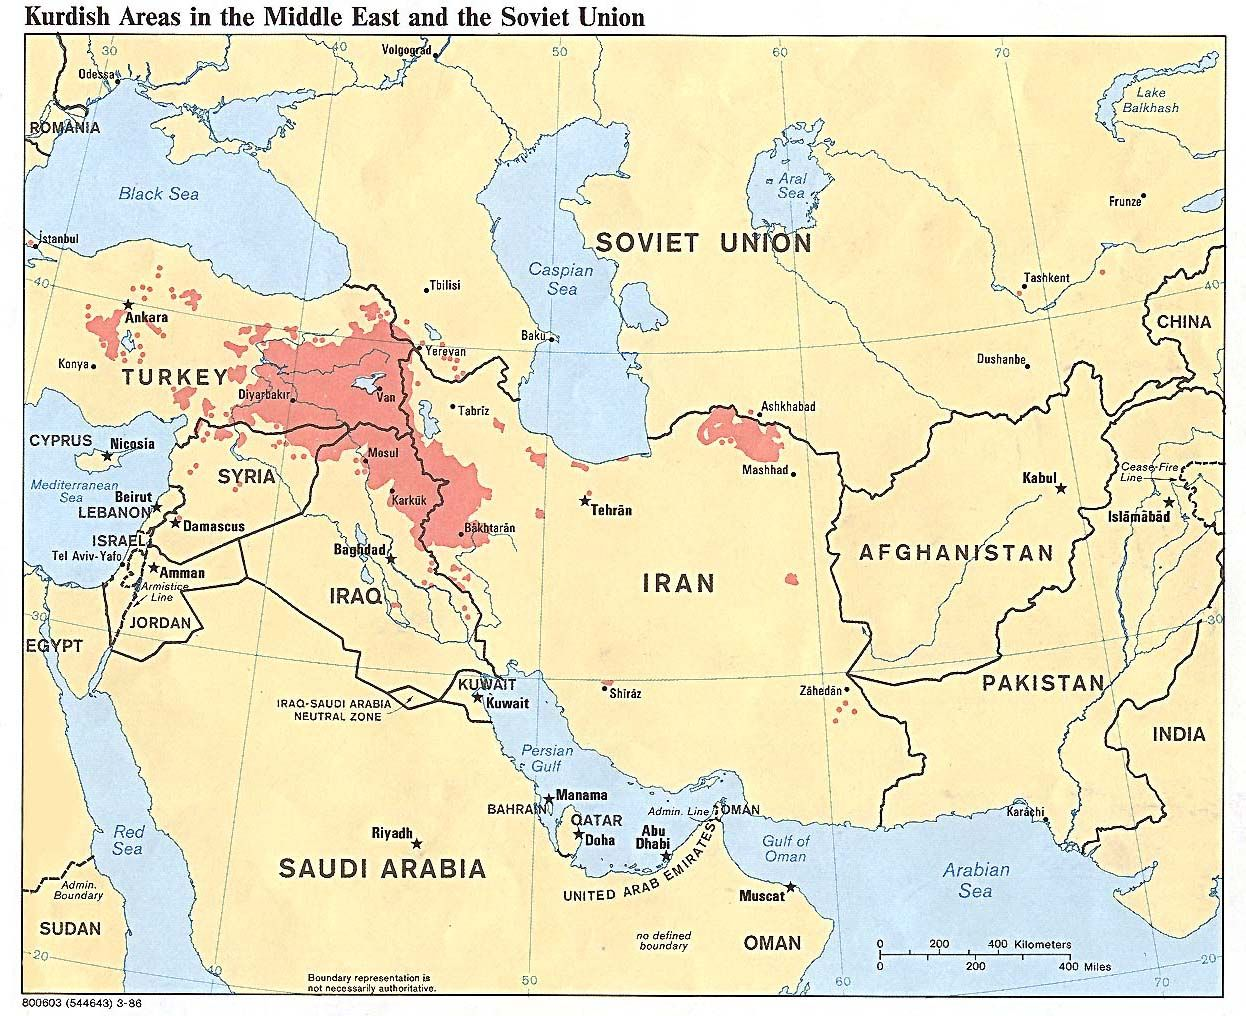 Map Of Middle East Continent Kurdish Areas in the Middle East and